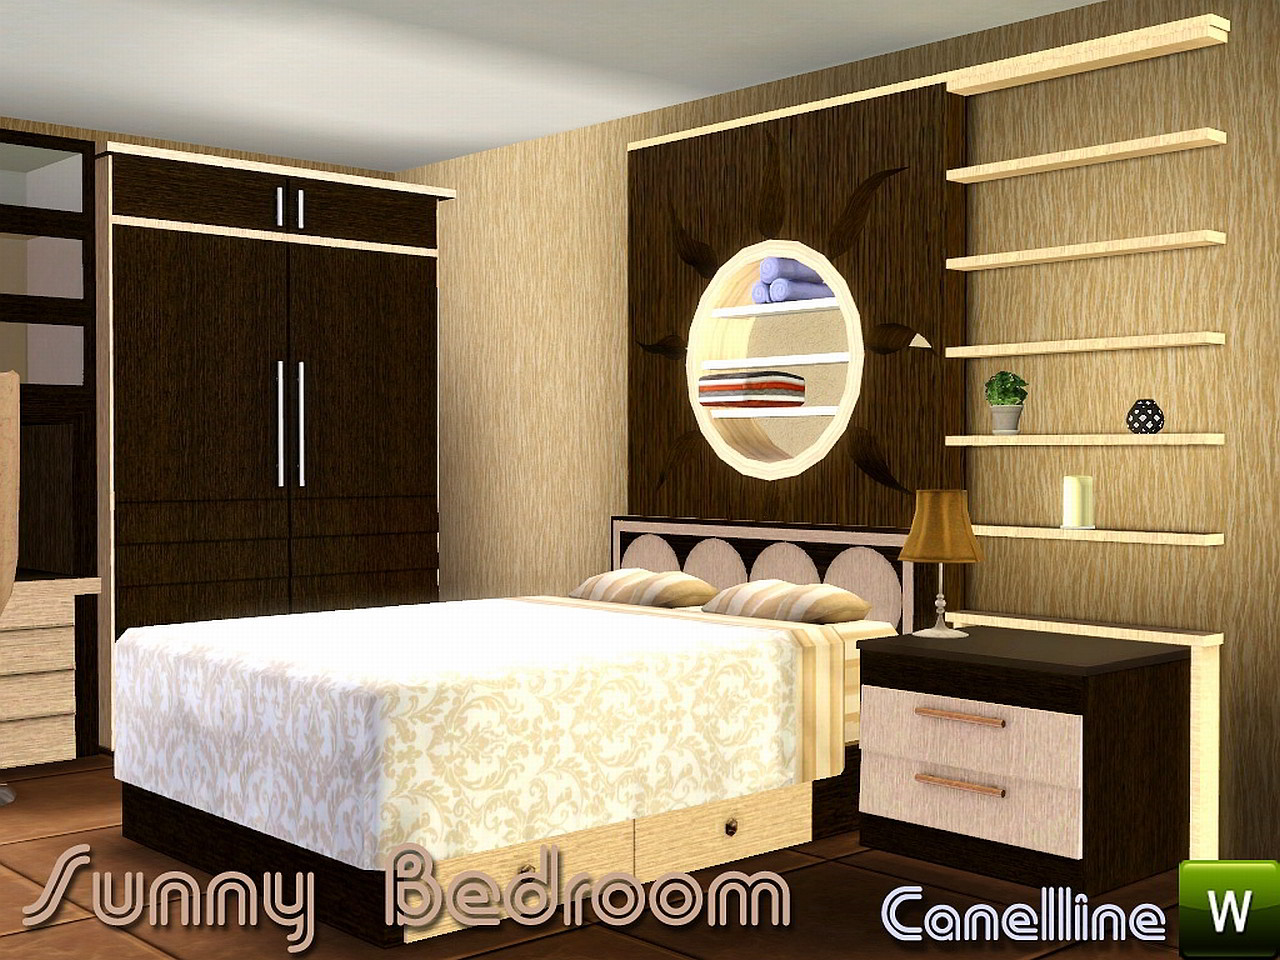 Sims 3 Bedroom Decor Sims 3 Updates Downloads Objects Bedroom Page 31